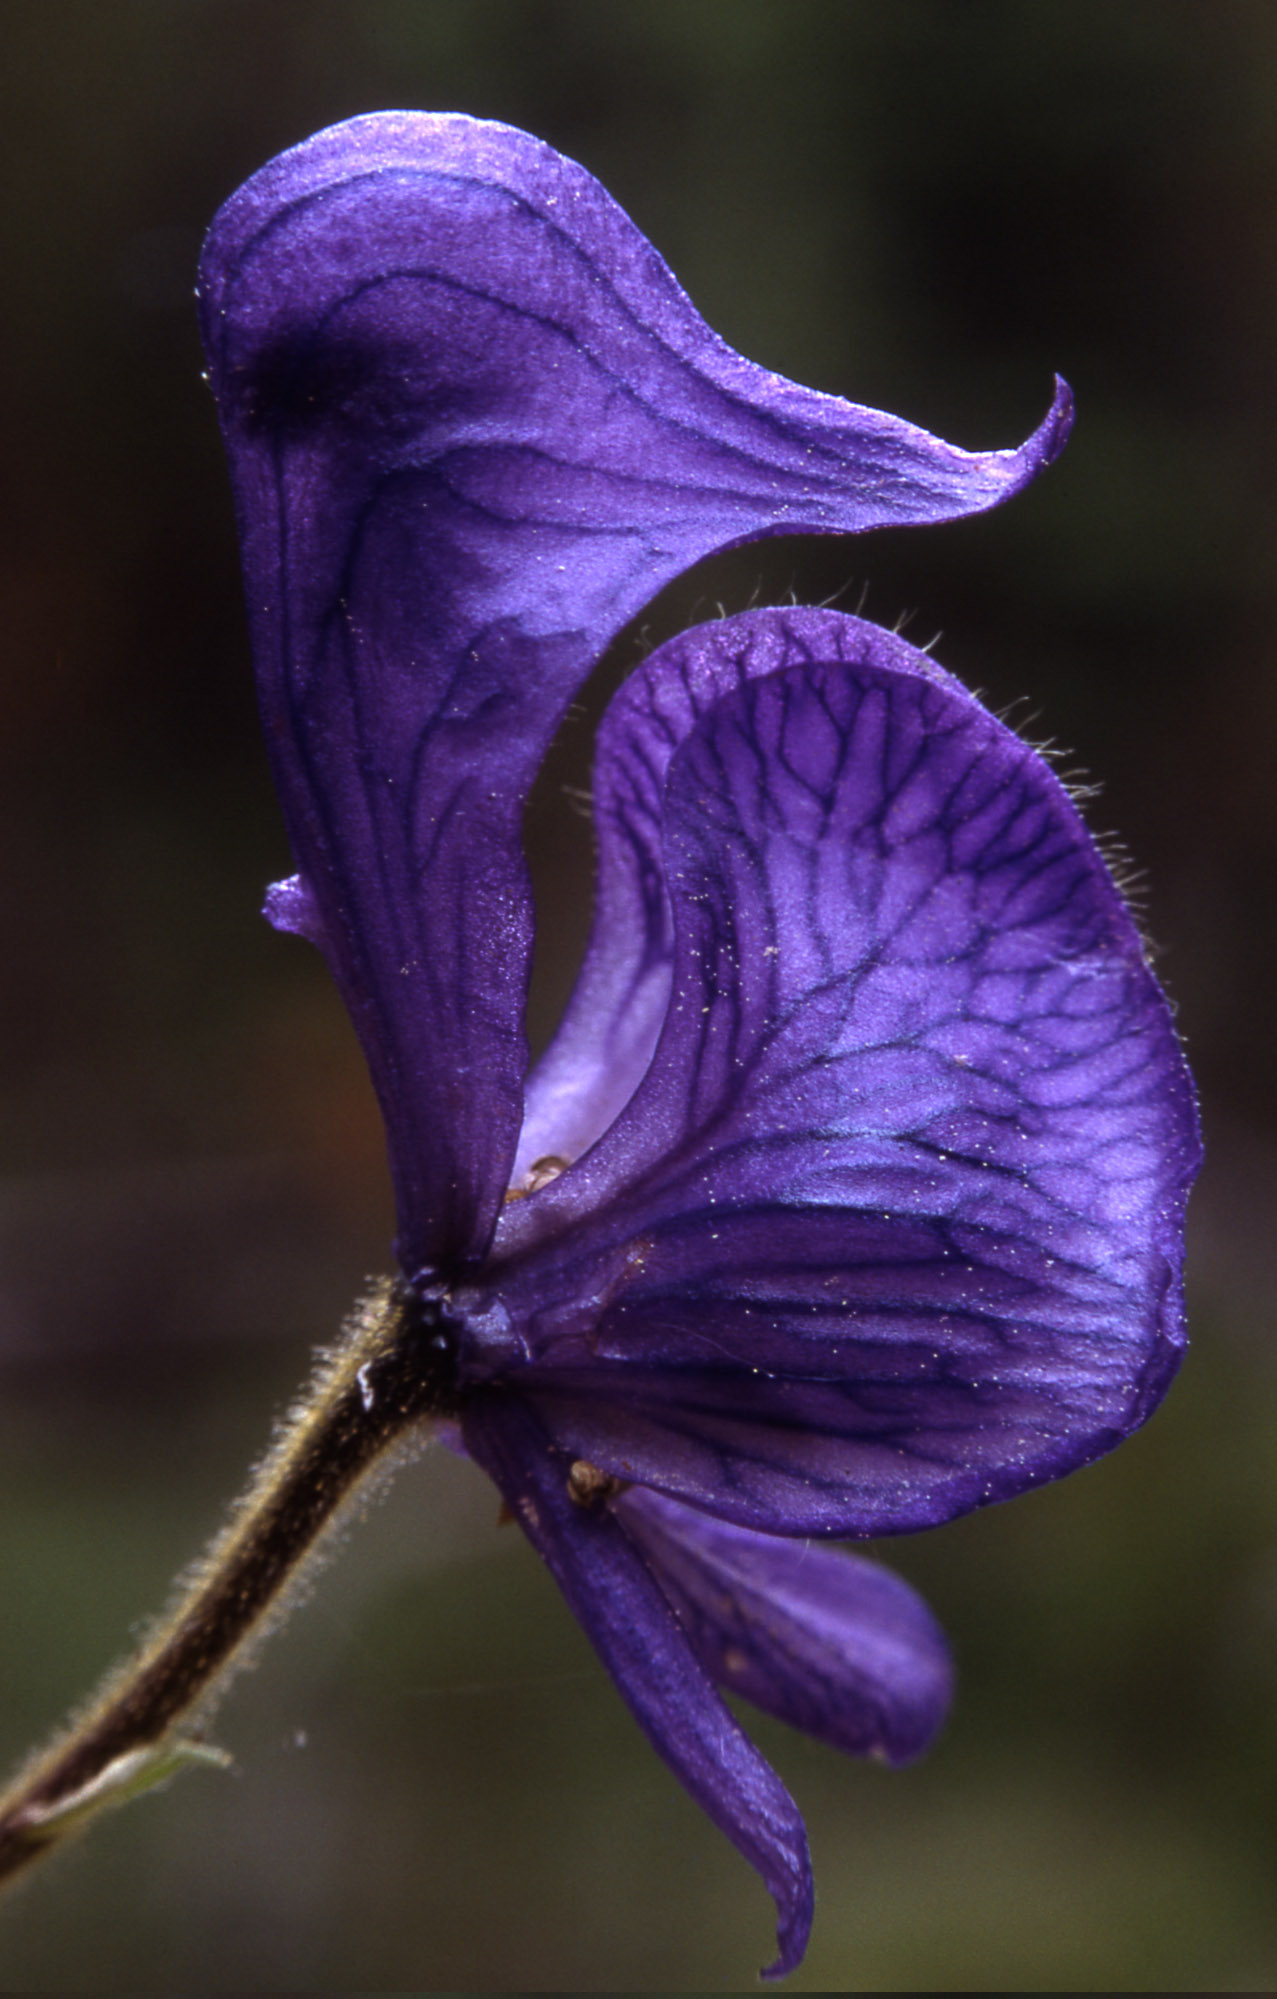 Gorgeous pic of monkshood by J. Schmidt of the National Park Service. https://commons.wikimedia.org/wiki/File:Aconitumcolumbianum.jpg